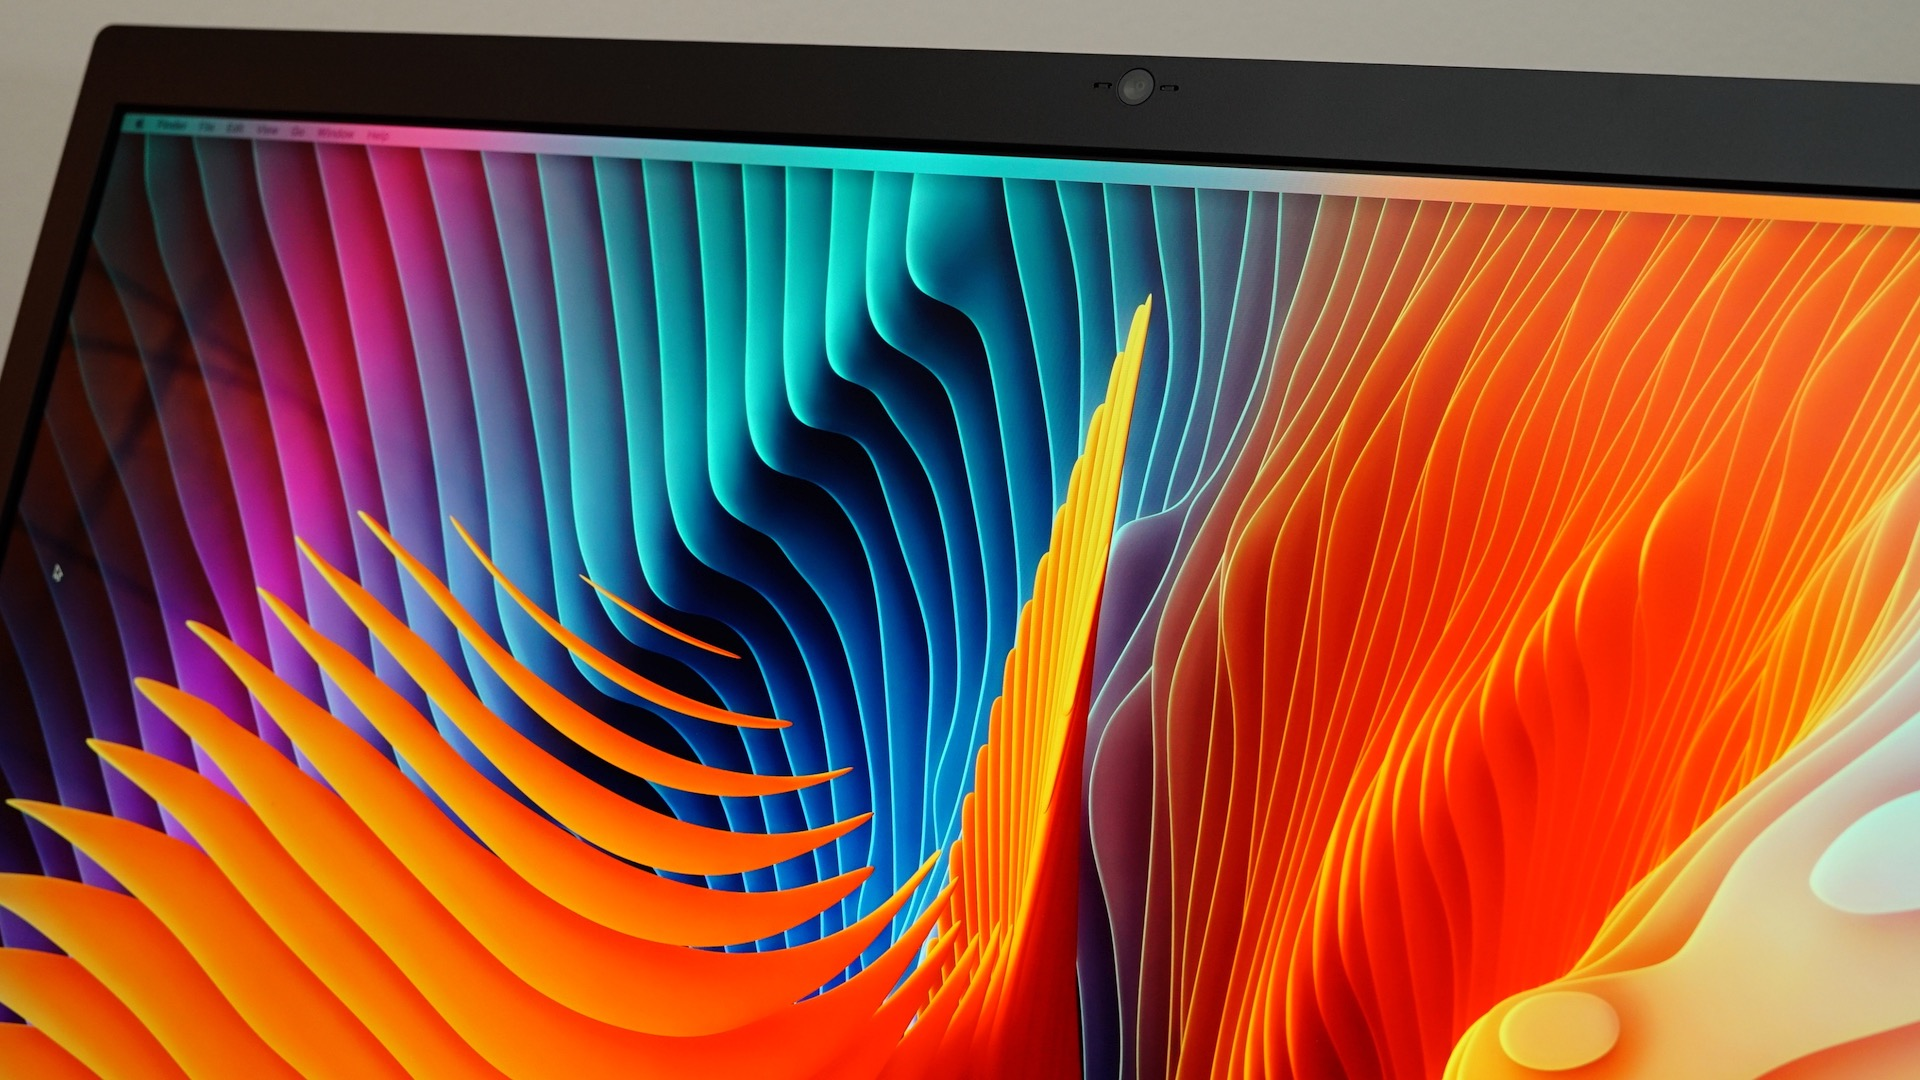 lg-ultrafine-5k-display-close-up